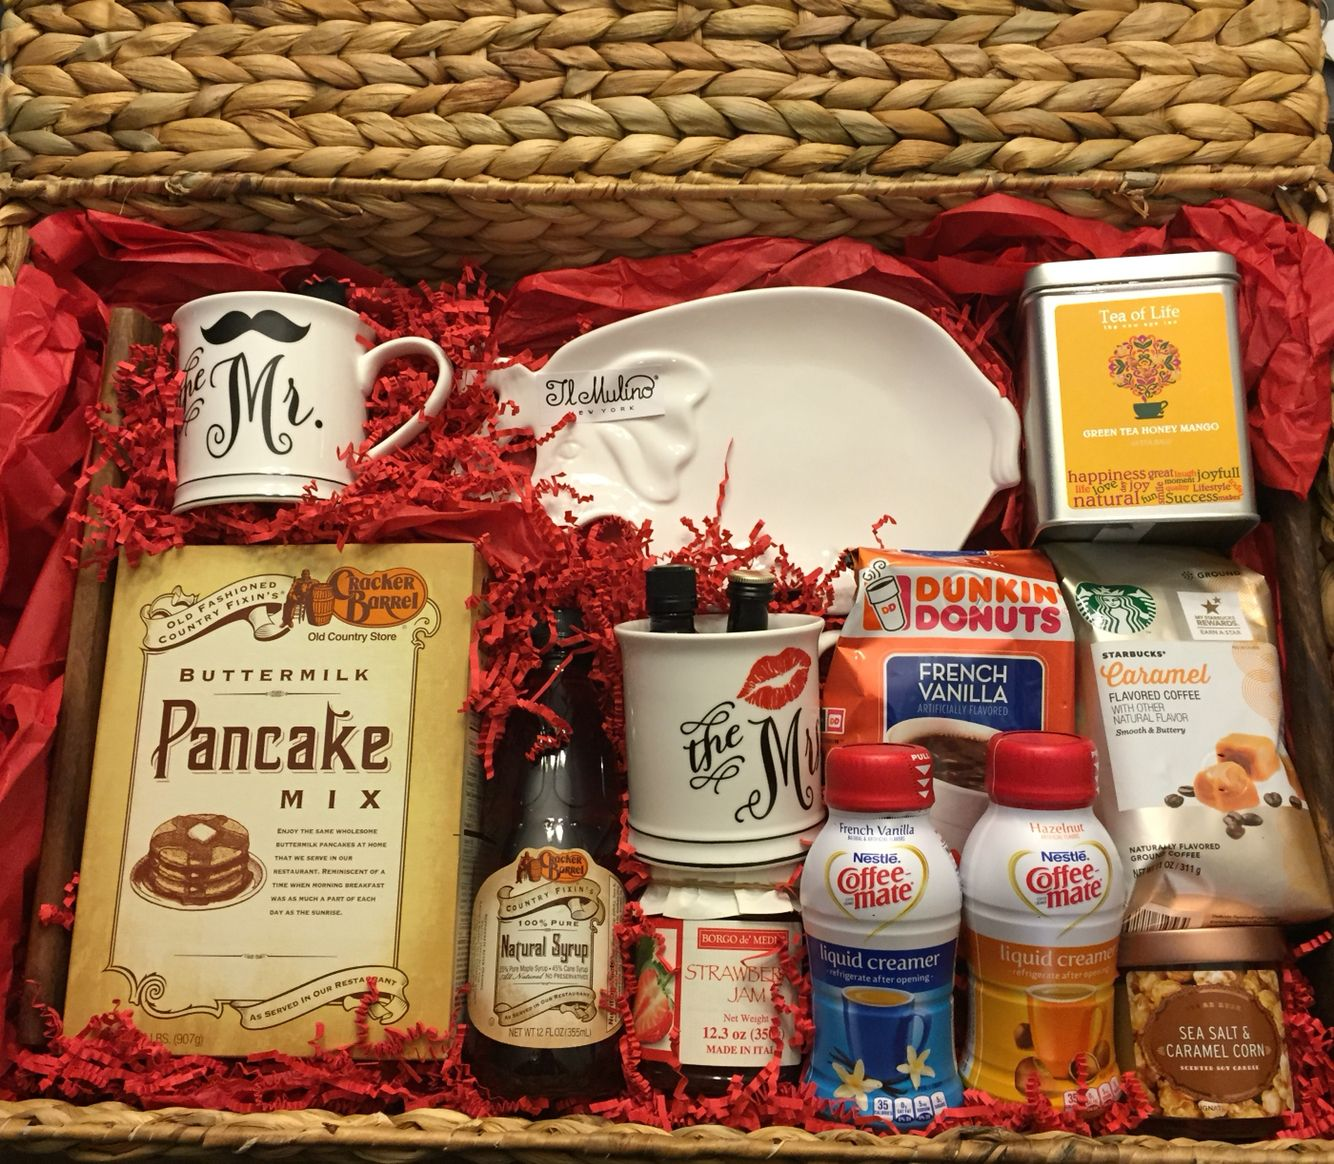 Breakfast in bed gift basket i made for a bridal shower gift my breakfast in bed gift basket i made for a bridal shower gift junglespirit Images